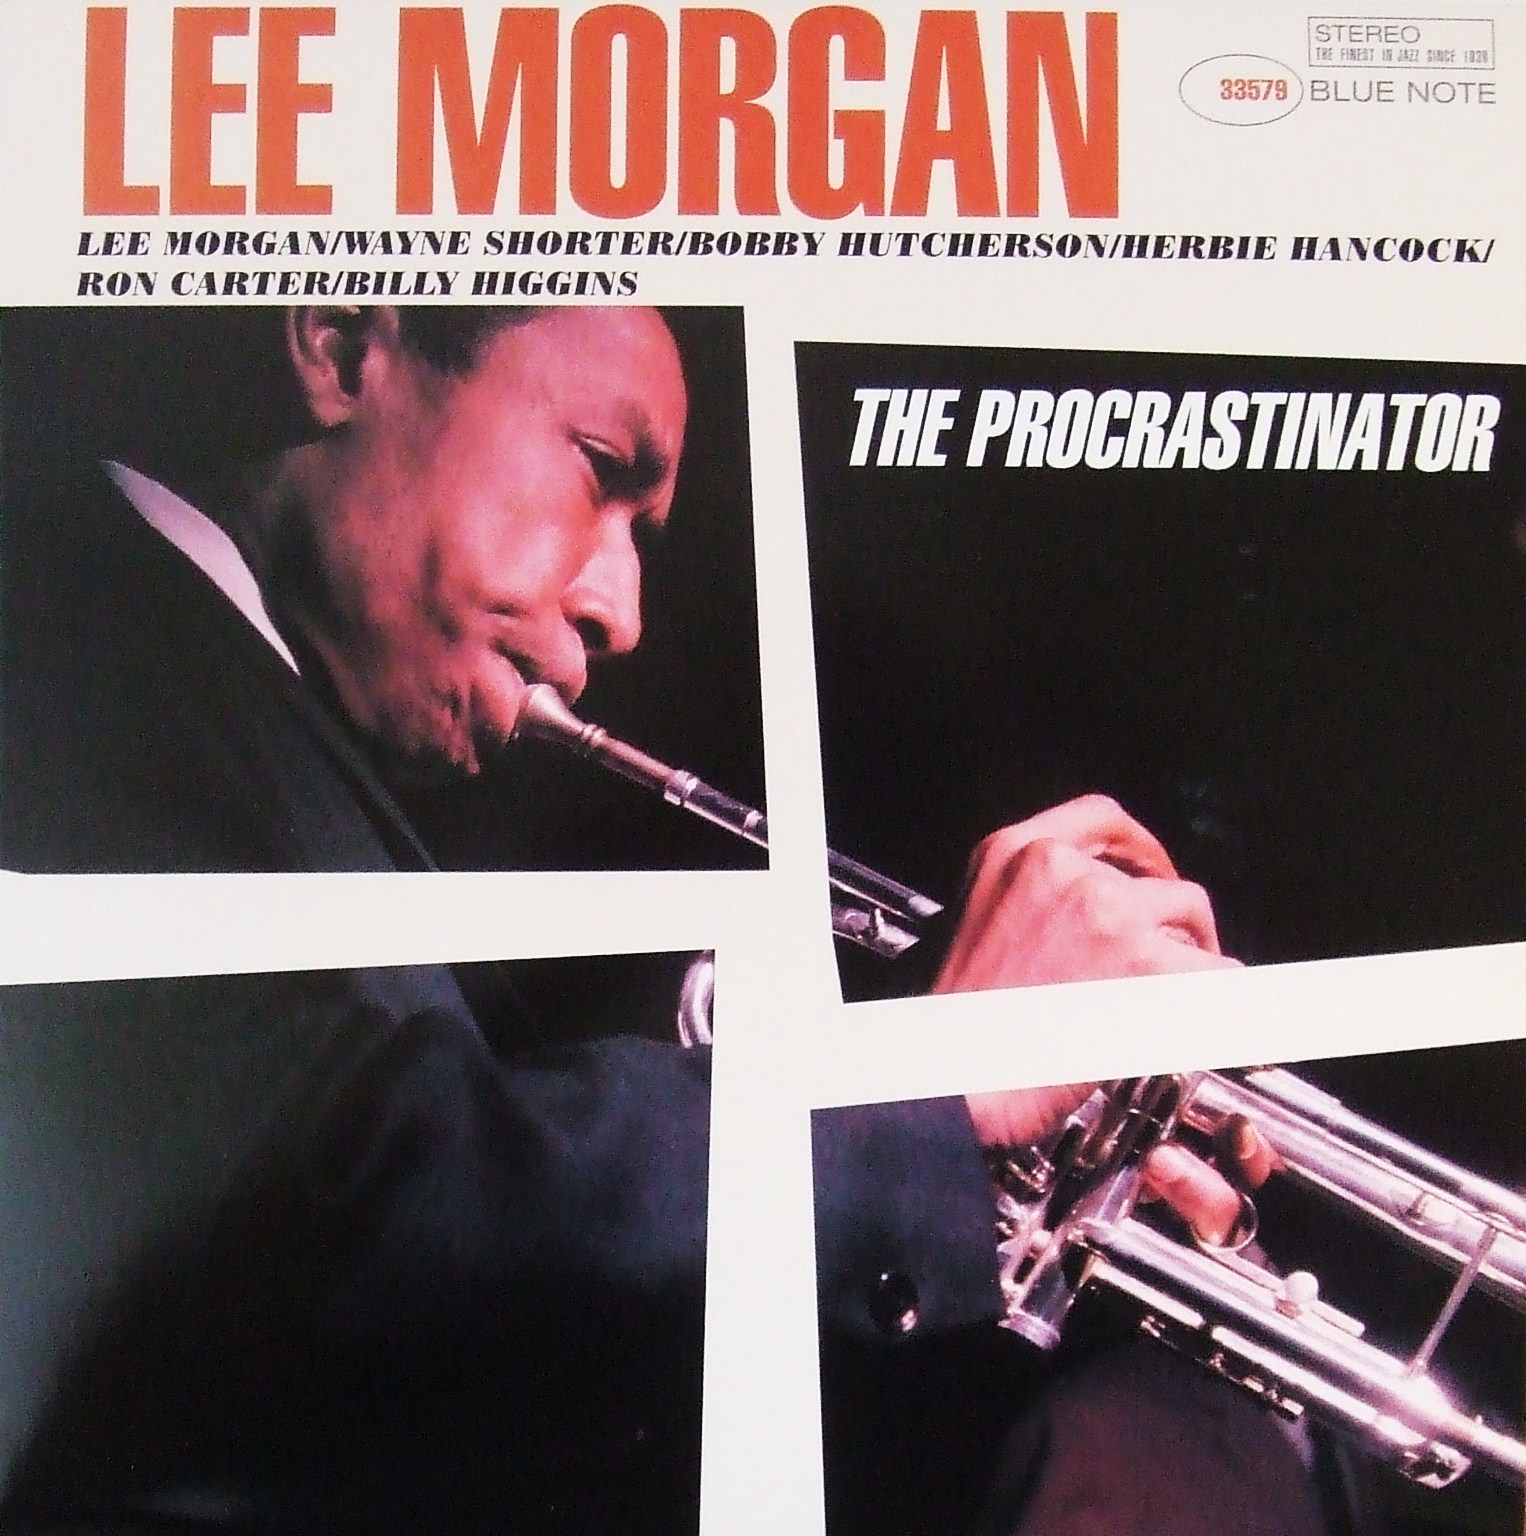 lee morgan - the procrastinator (sleeve art)